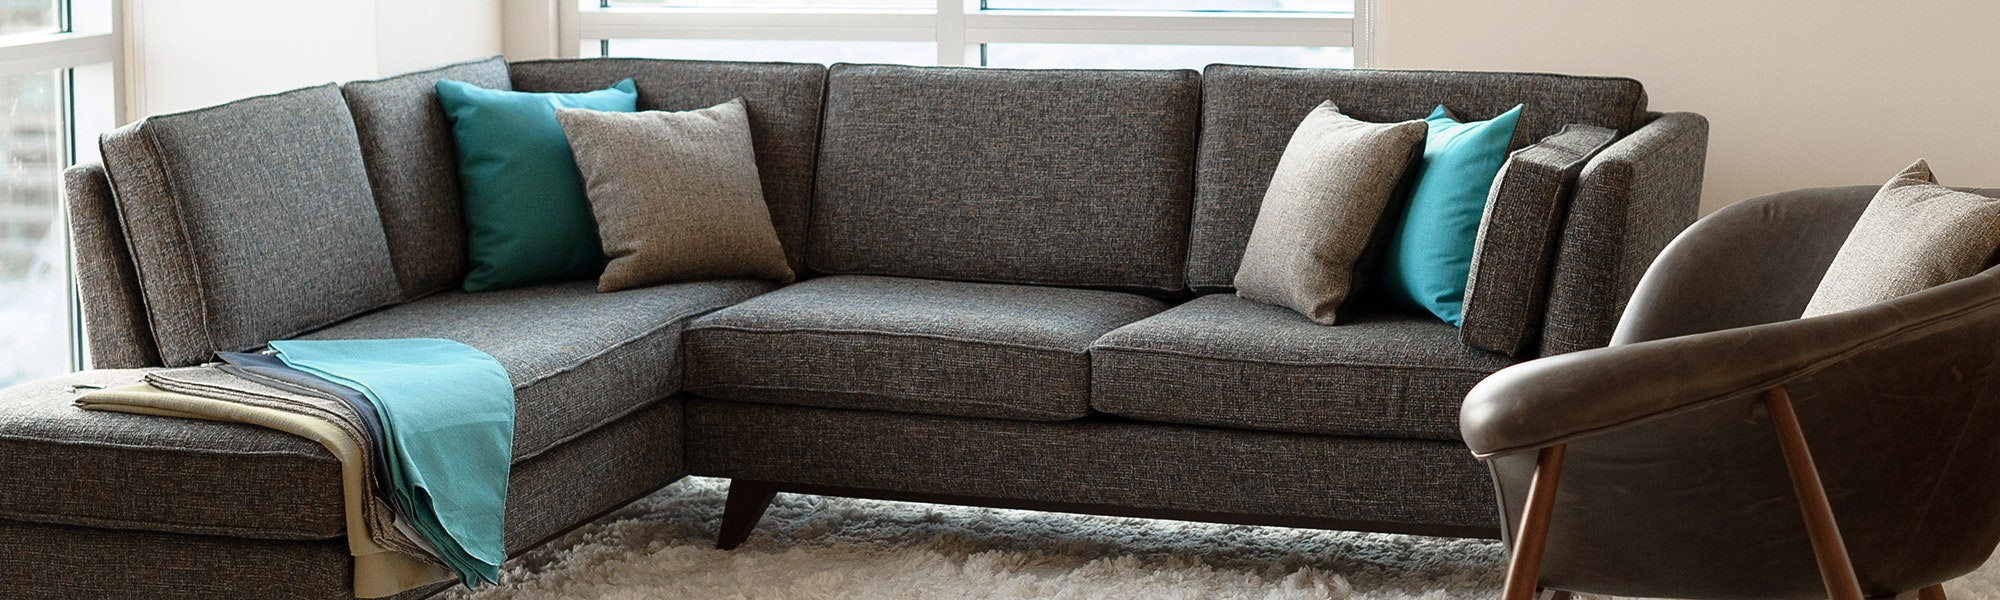 Professional Upholstery Cleaning Kingsway